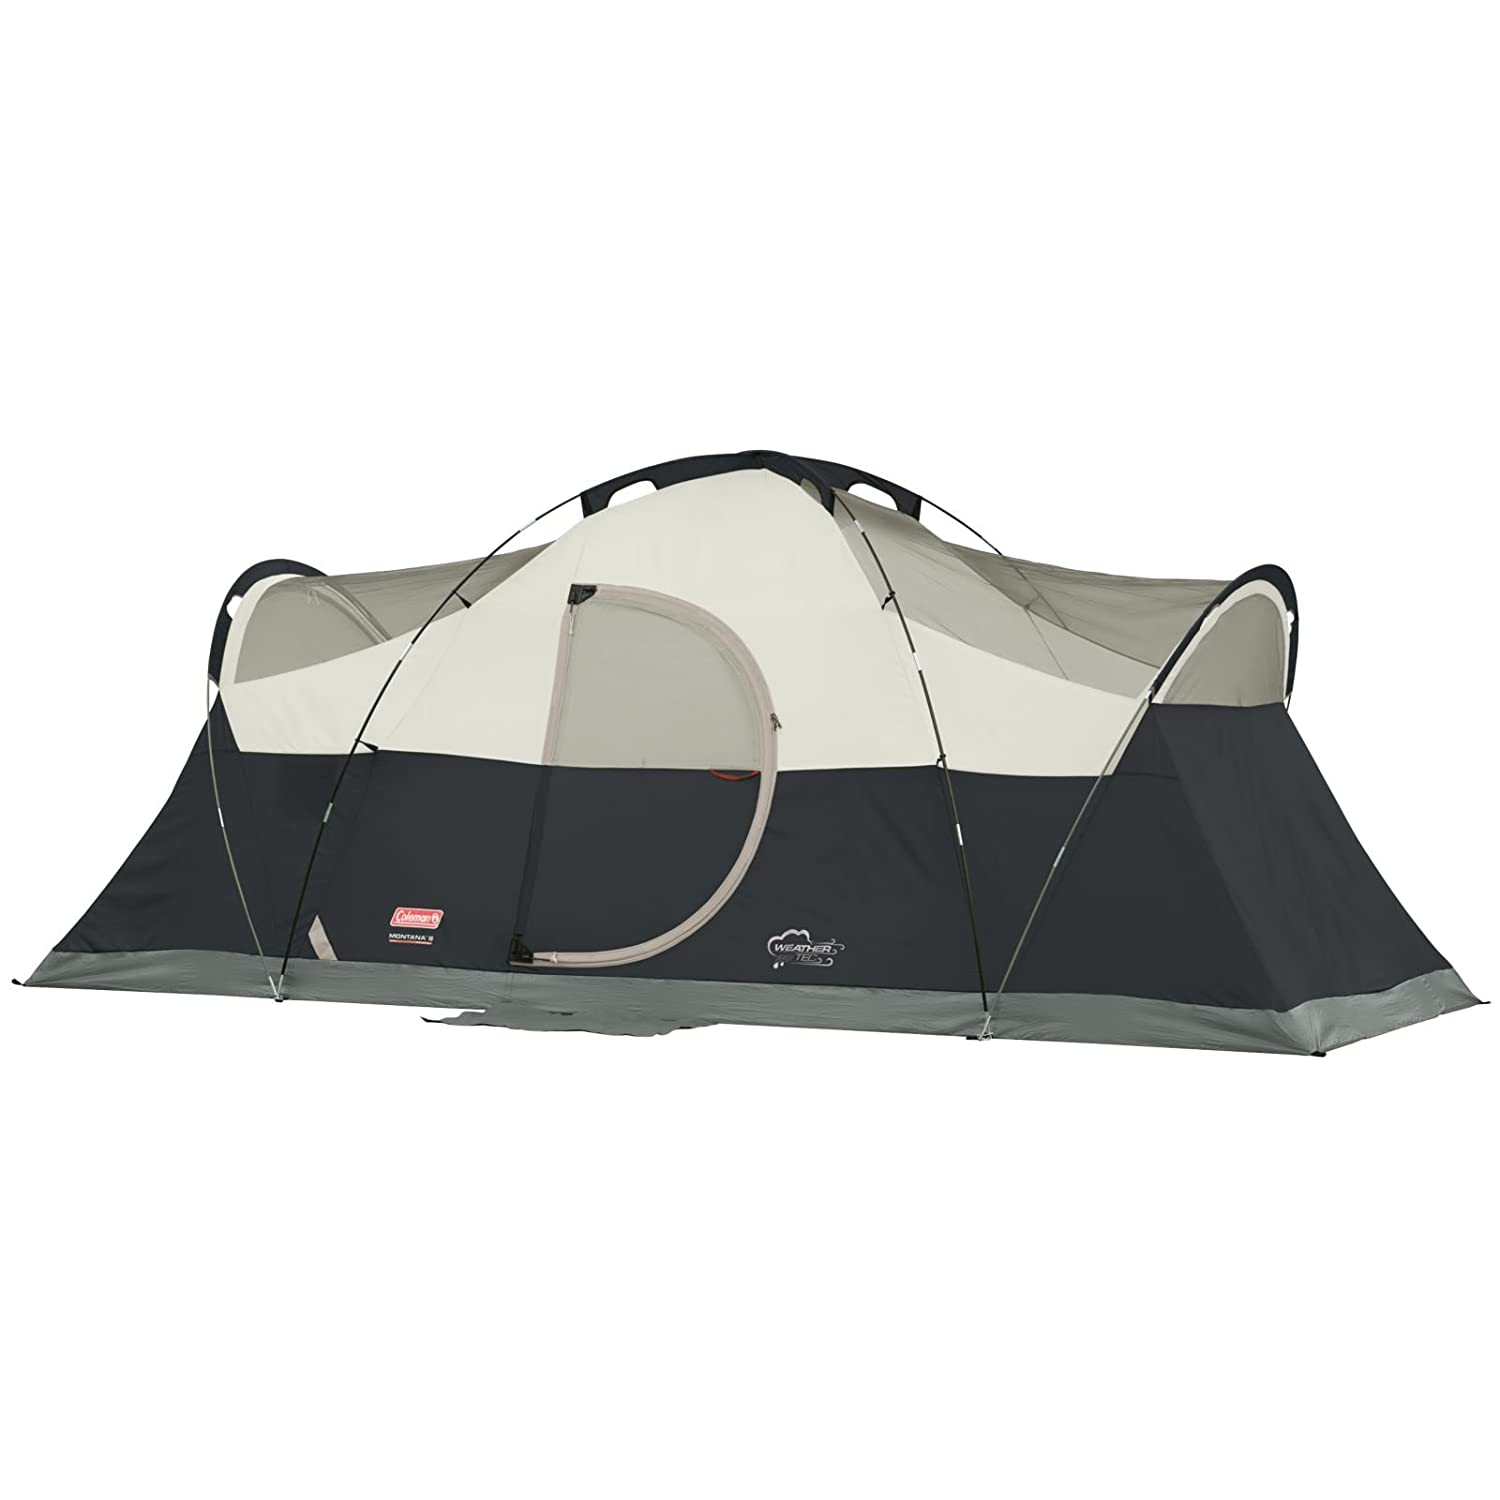 sc 1 st  Amazon.com & Amazon.com : Coleman Montana 8-Person Tent Black : Sports u0026 Outdoors